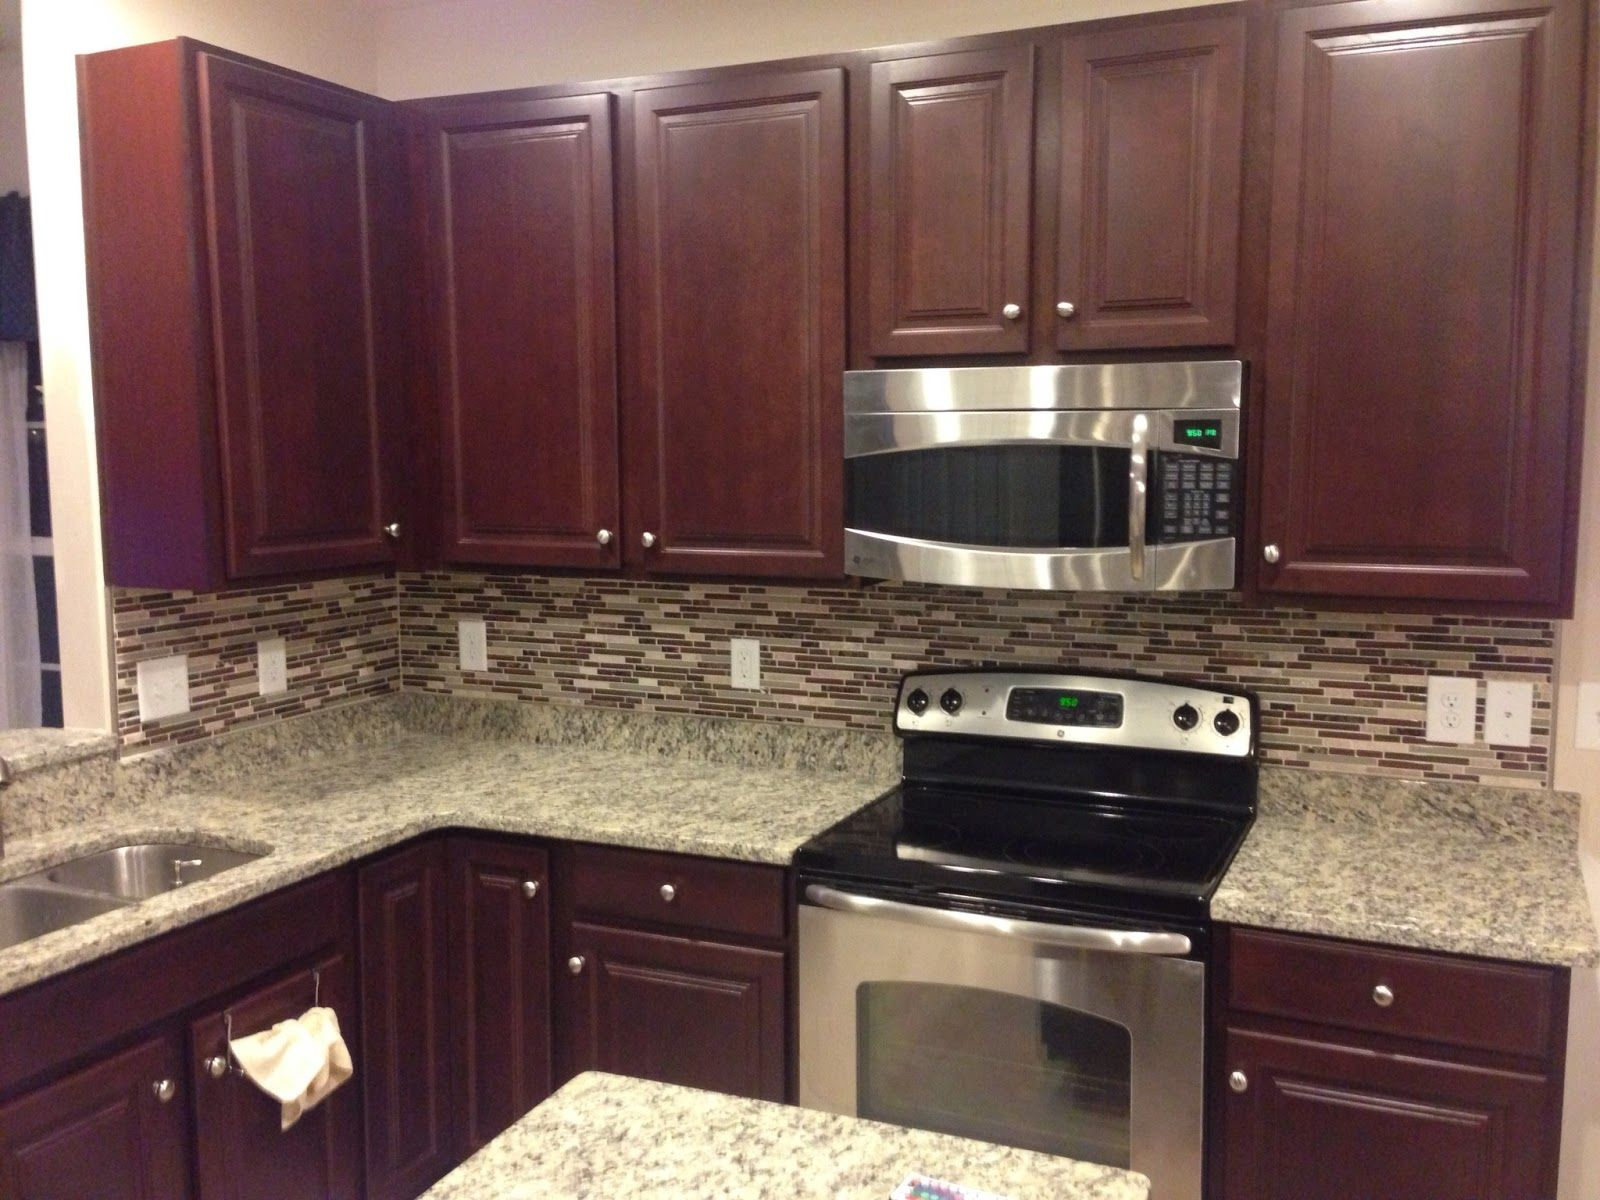 White Kitchen Cabinets With Colored Backsplash